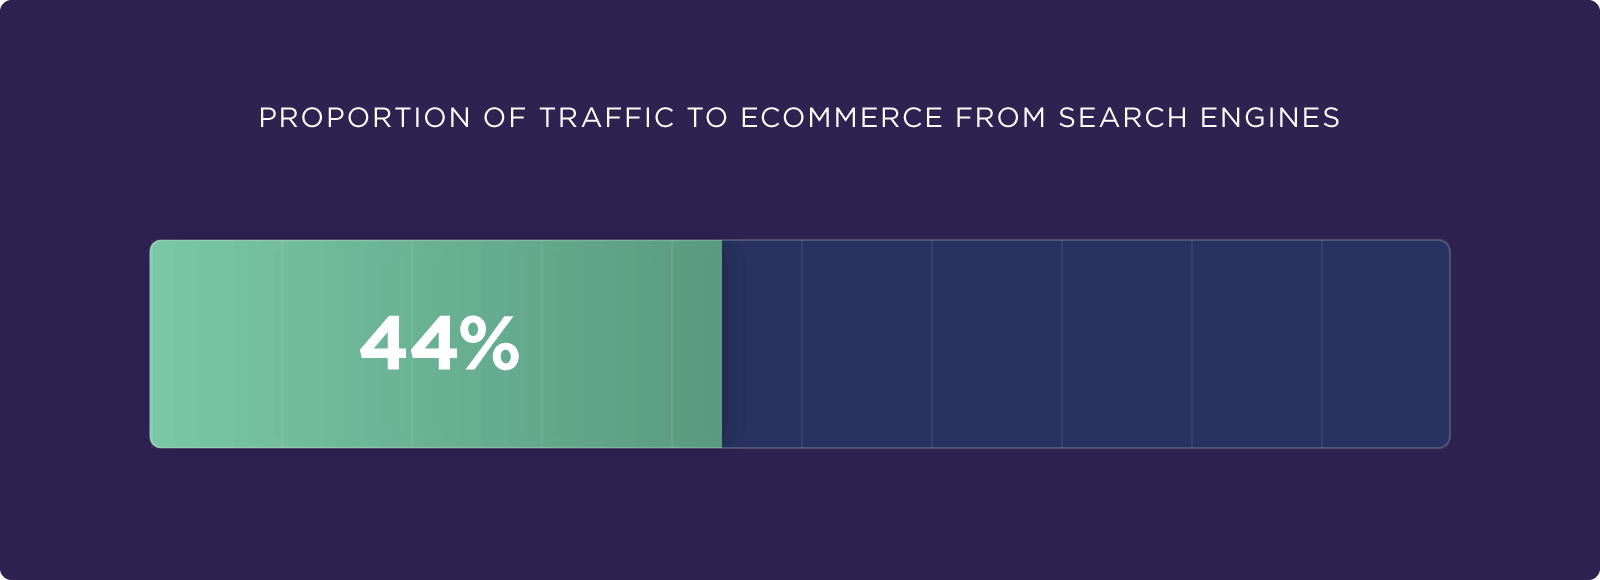 Proportion of traffic to ecommerce from search engines